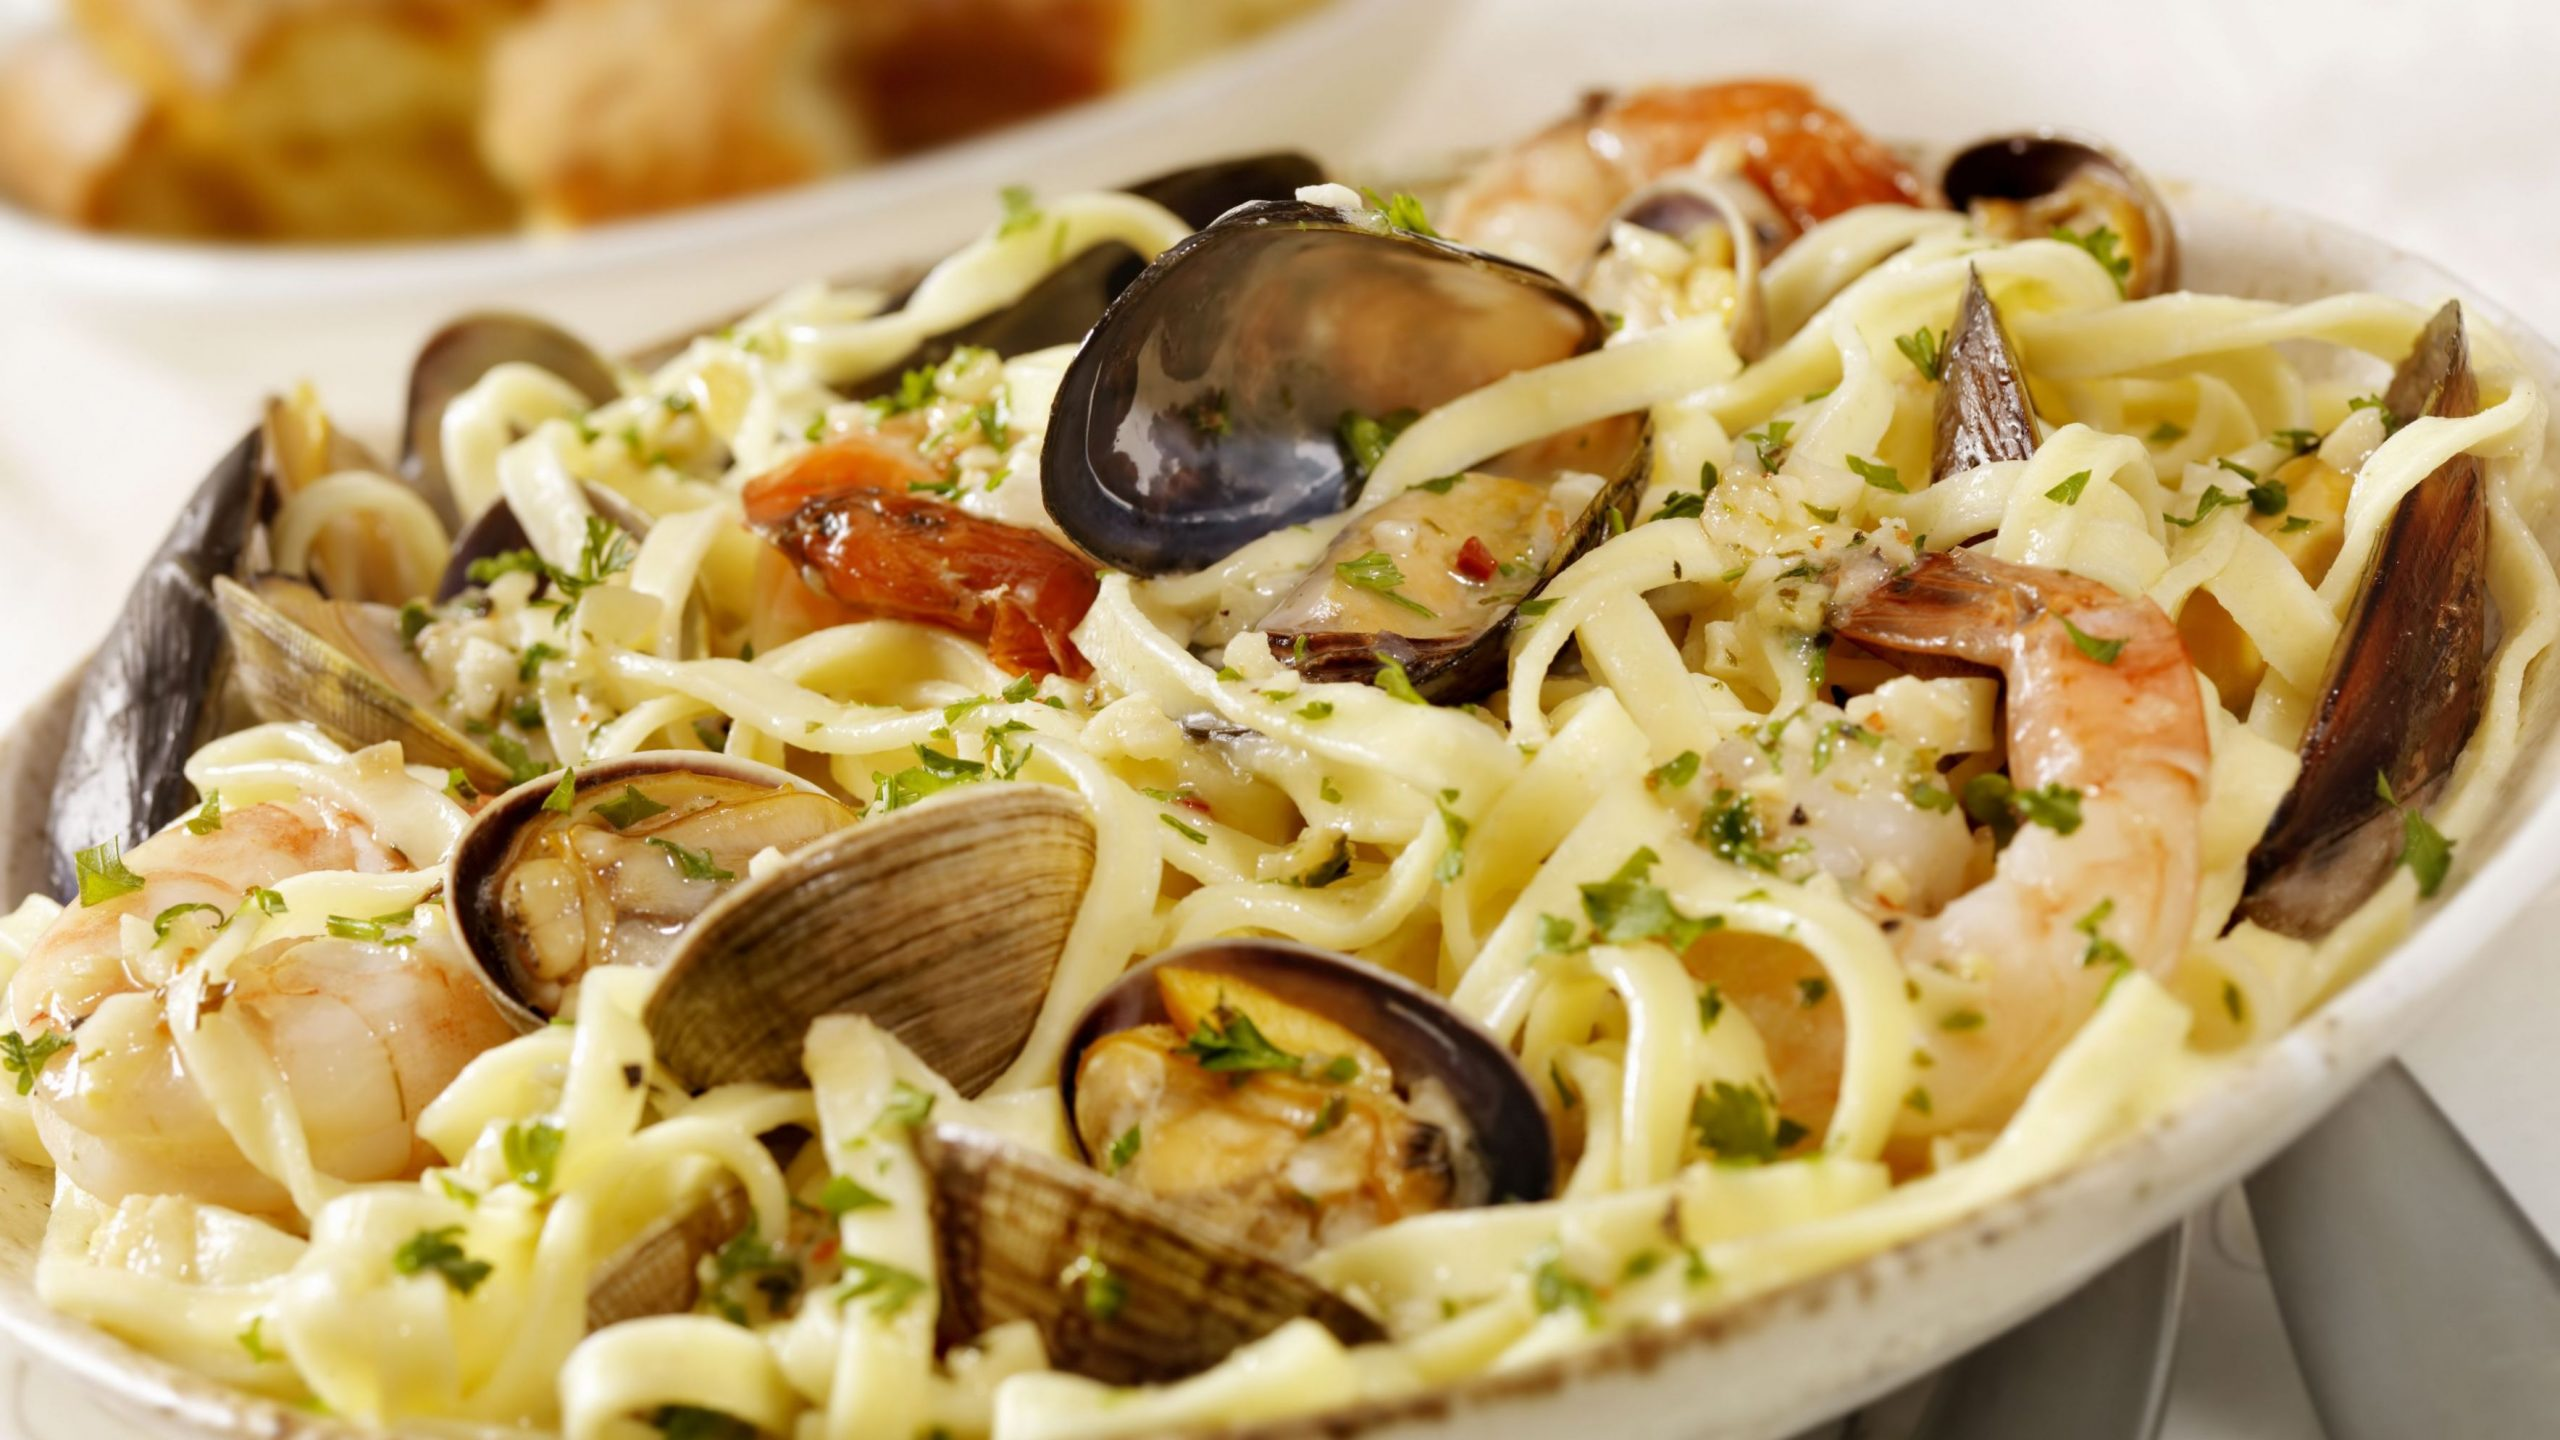 Pasta With Mixed Seafood (Pasta alla Posillipo) - Recipes Fish Pasta